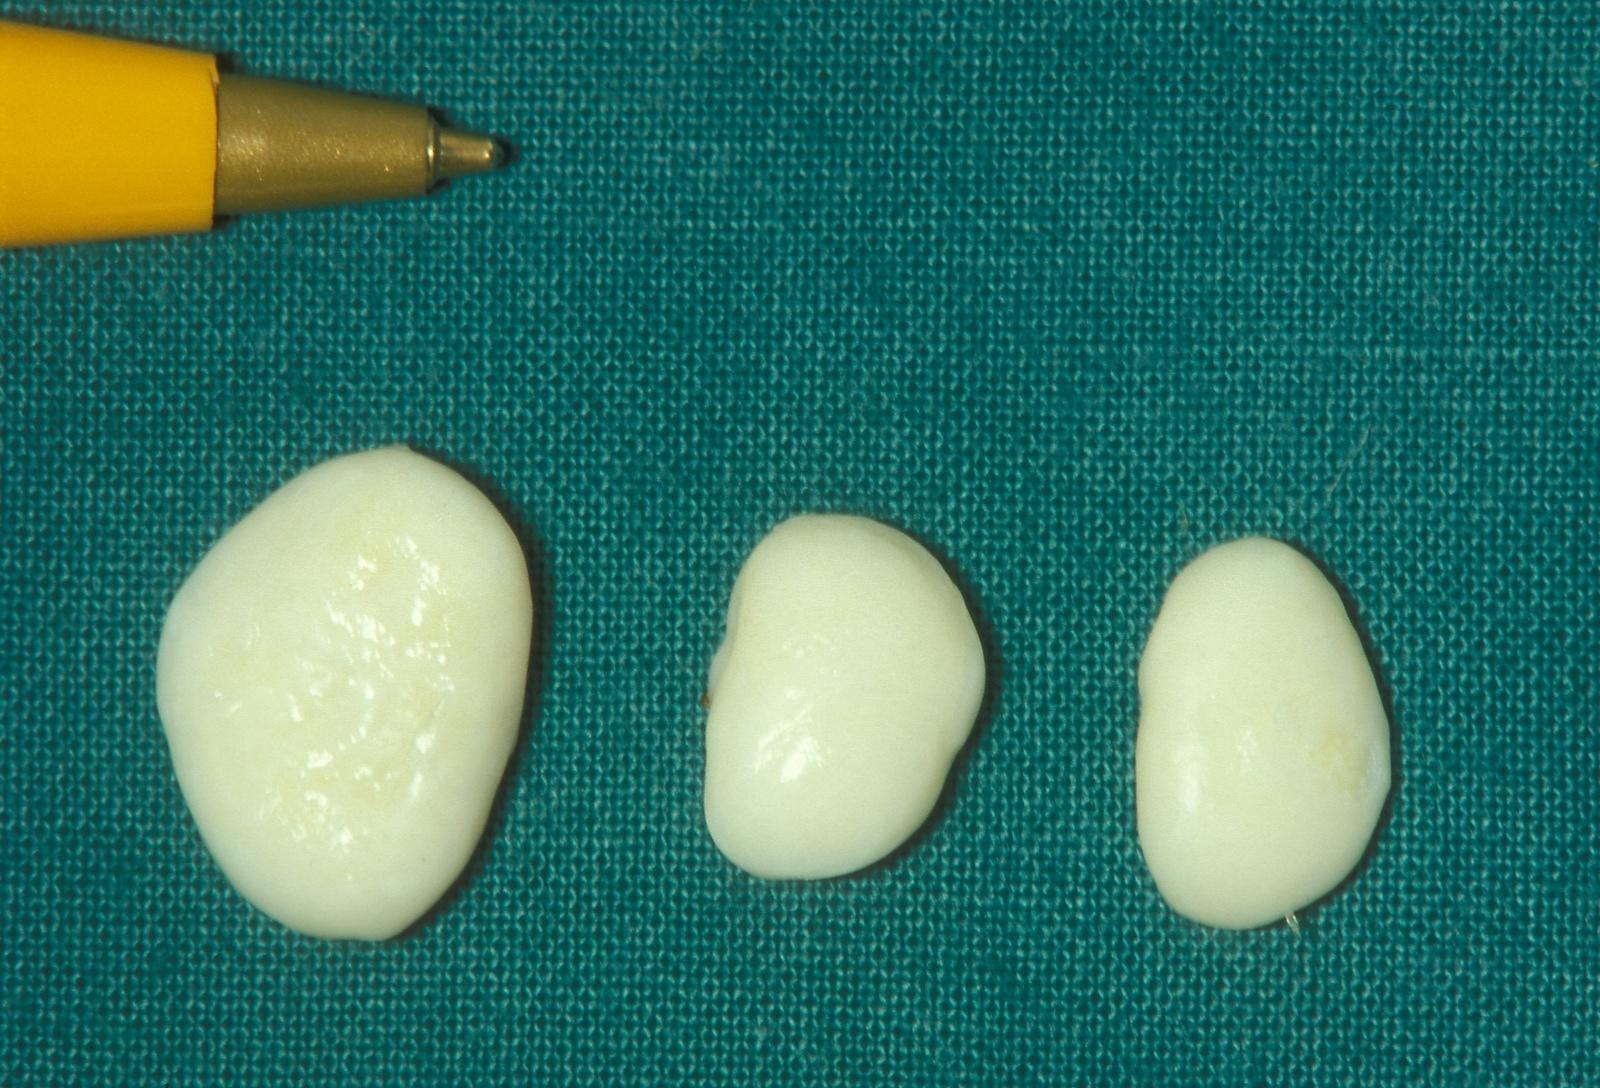 Loose bodies after removal from the knee joint.